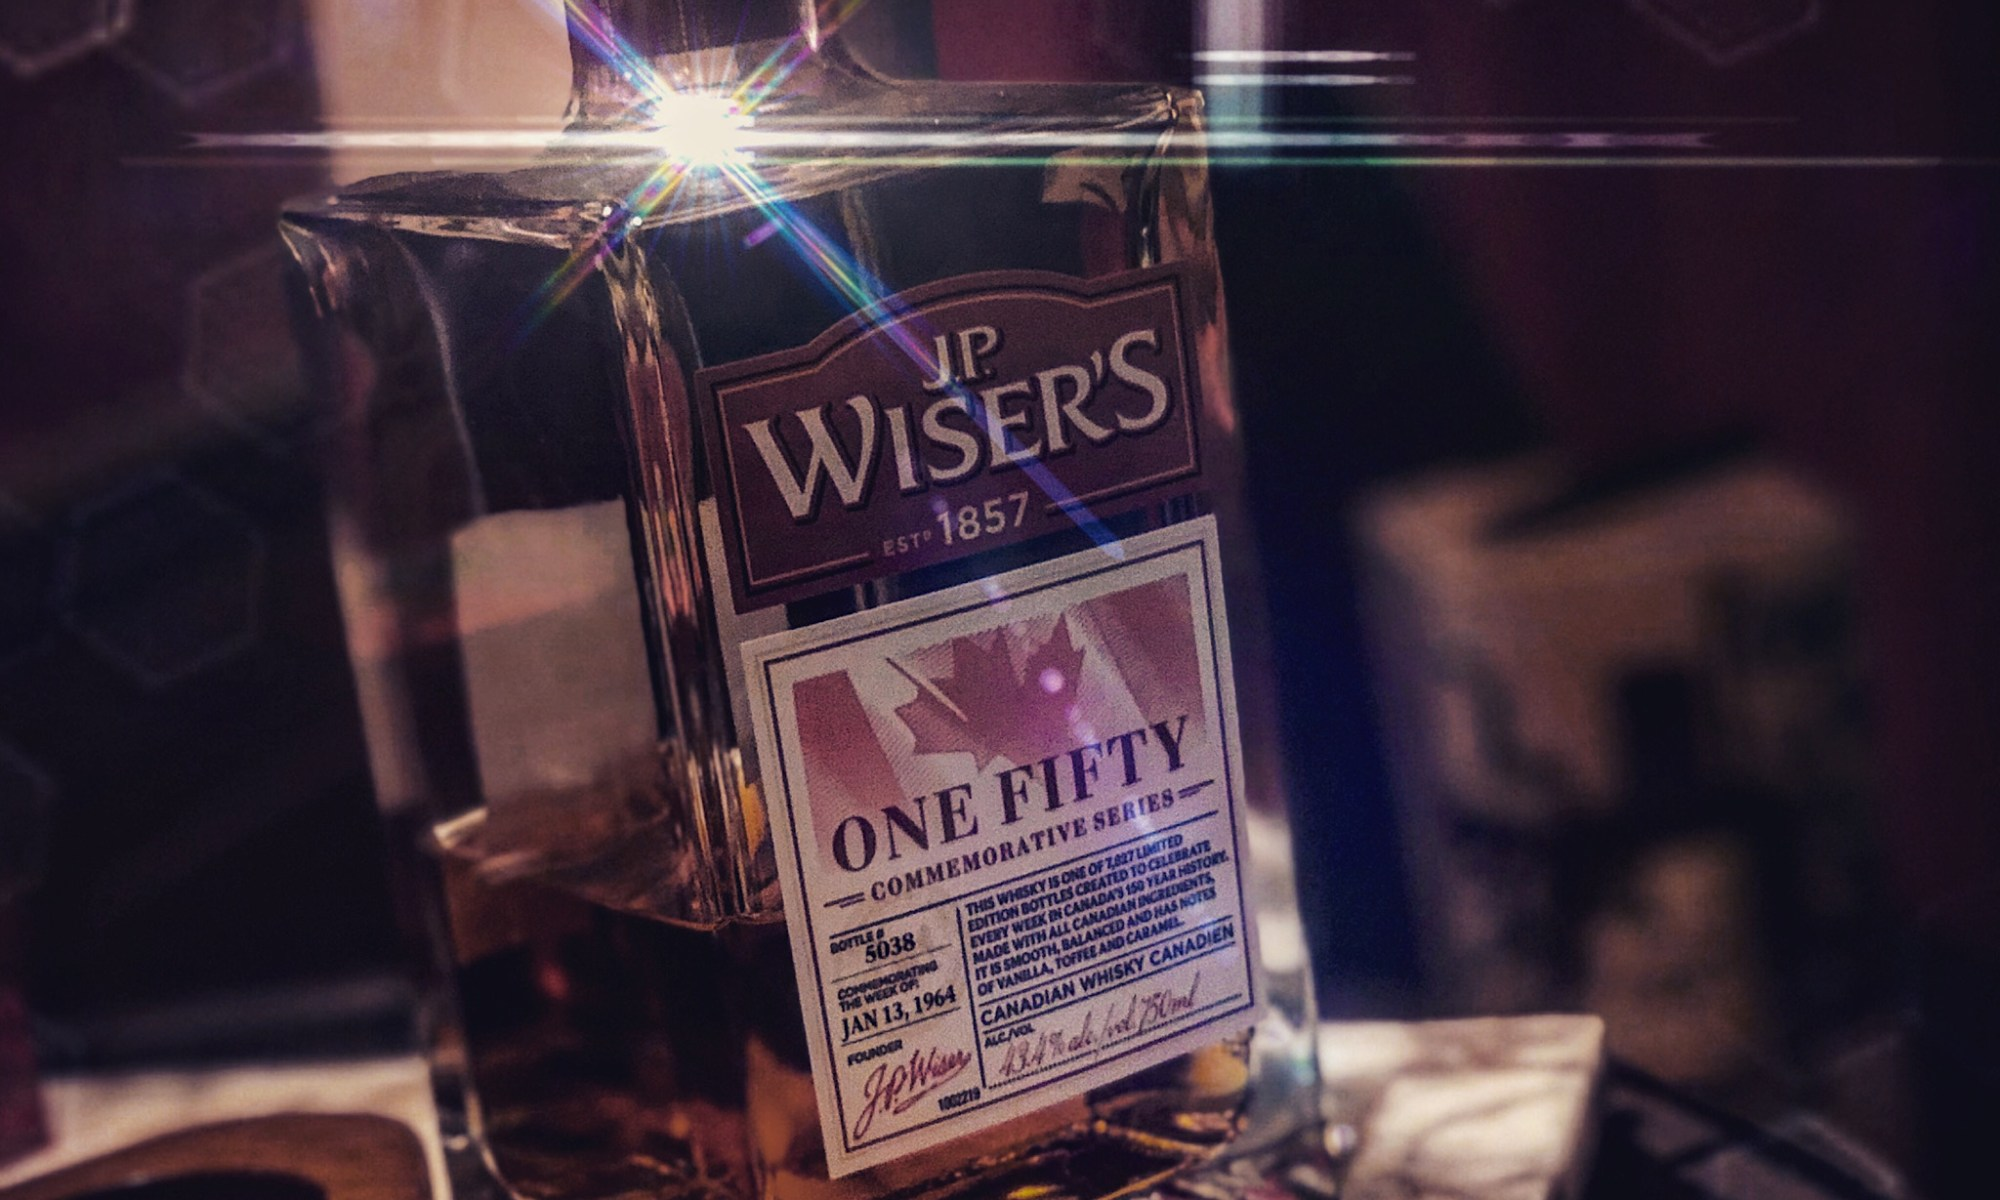 Wisers One Fifty